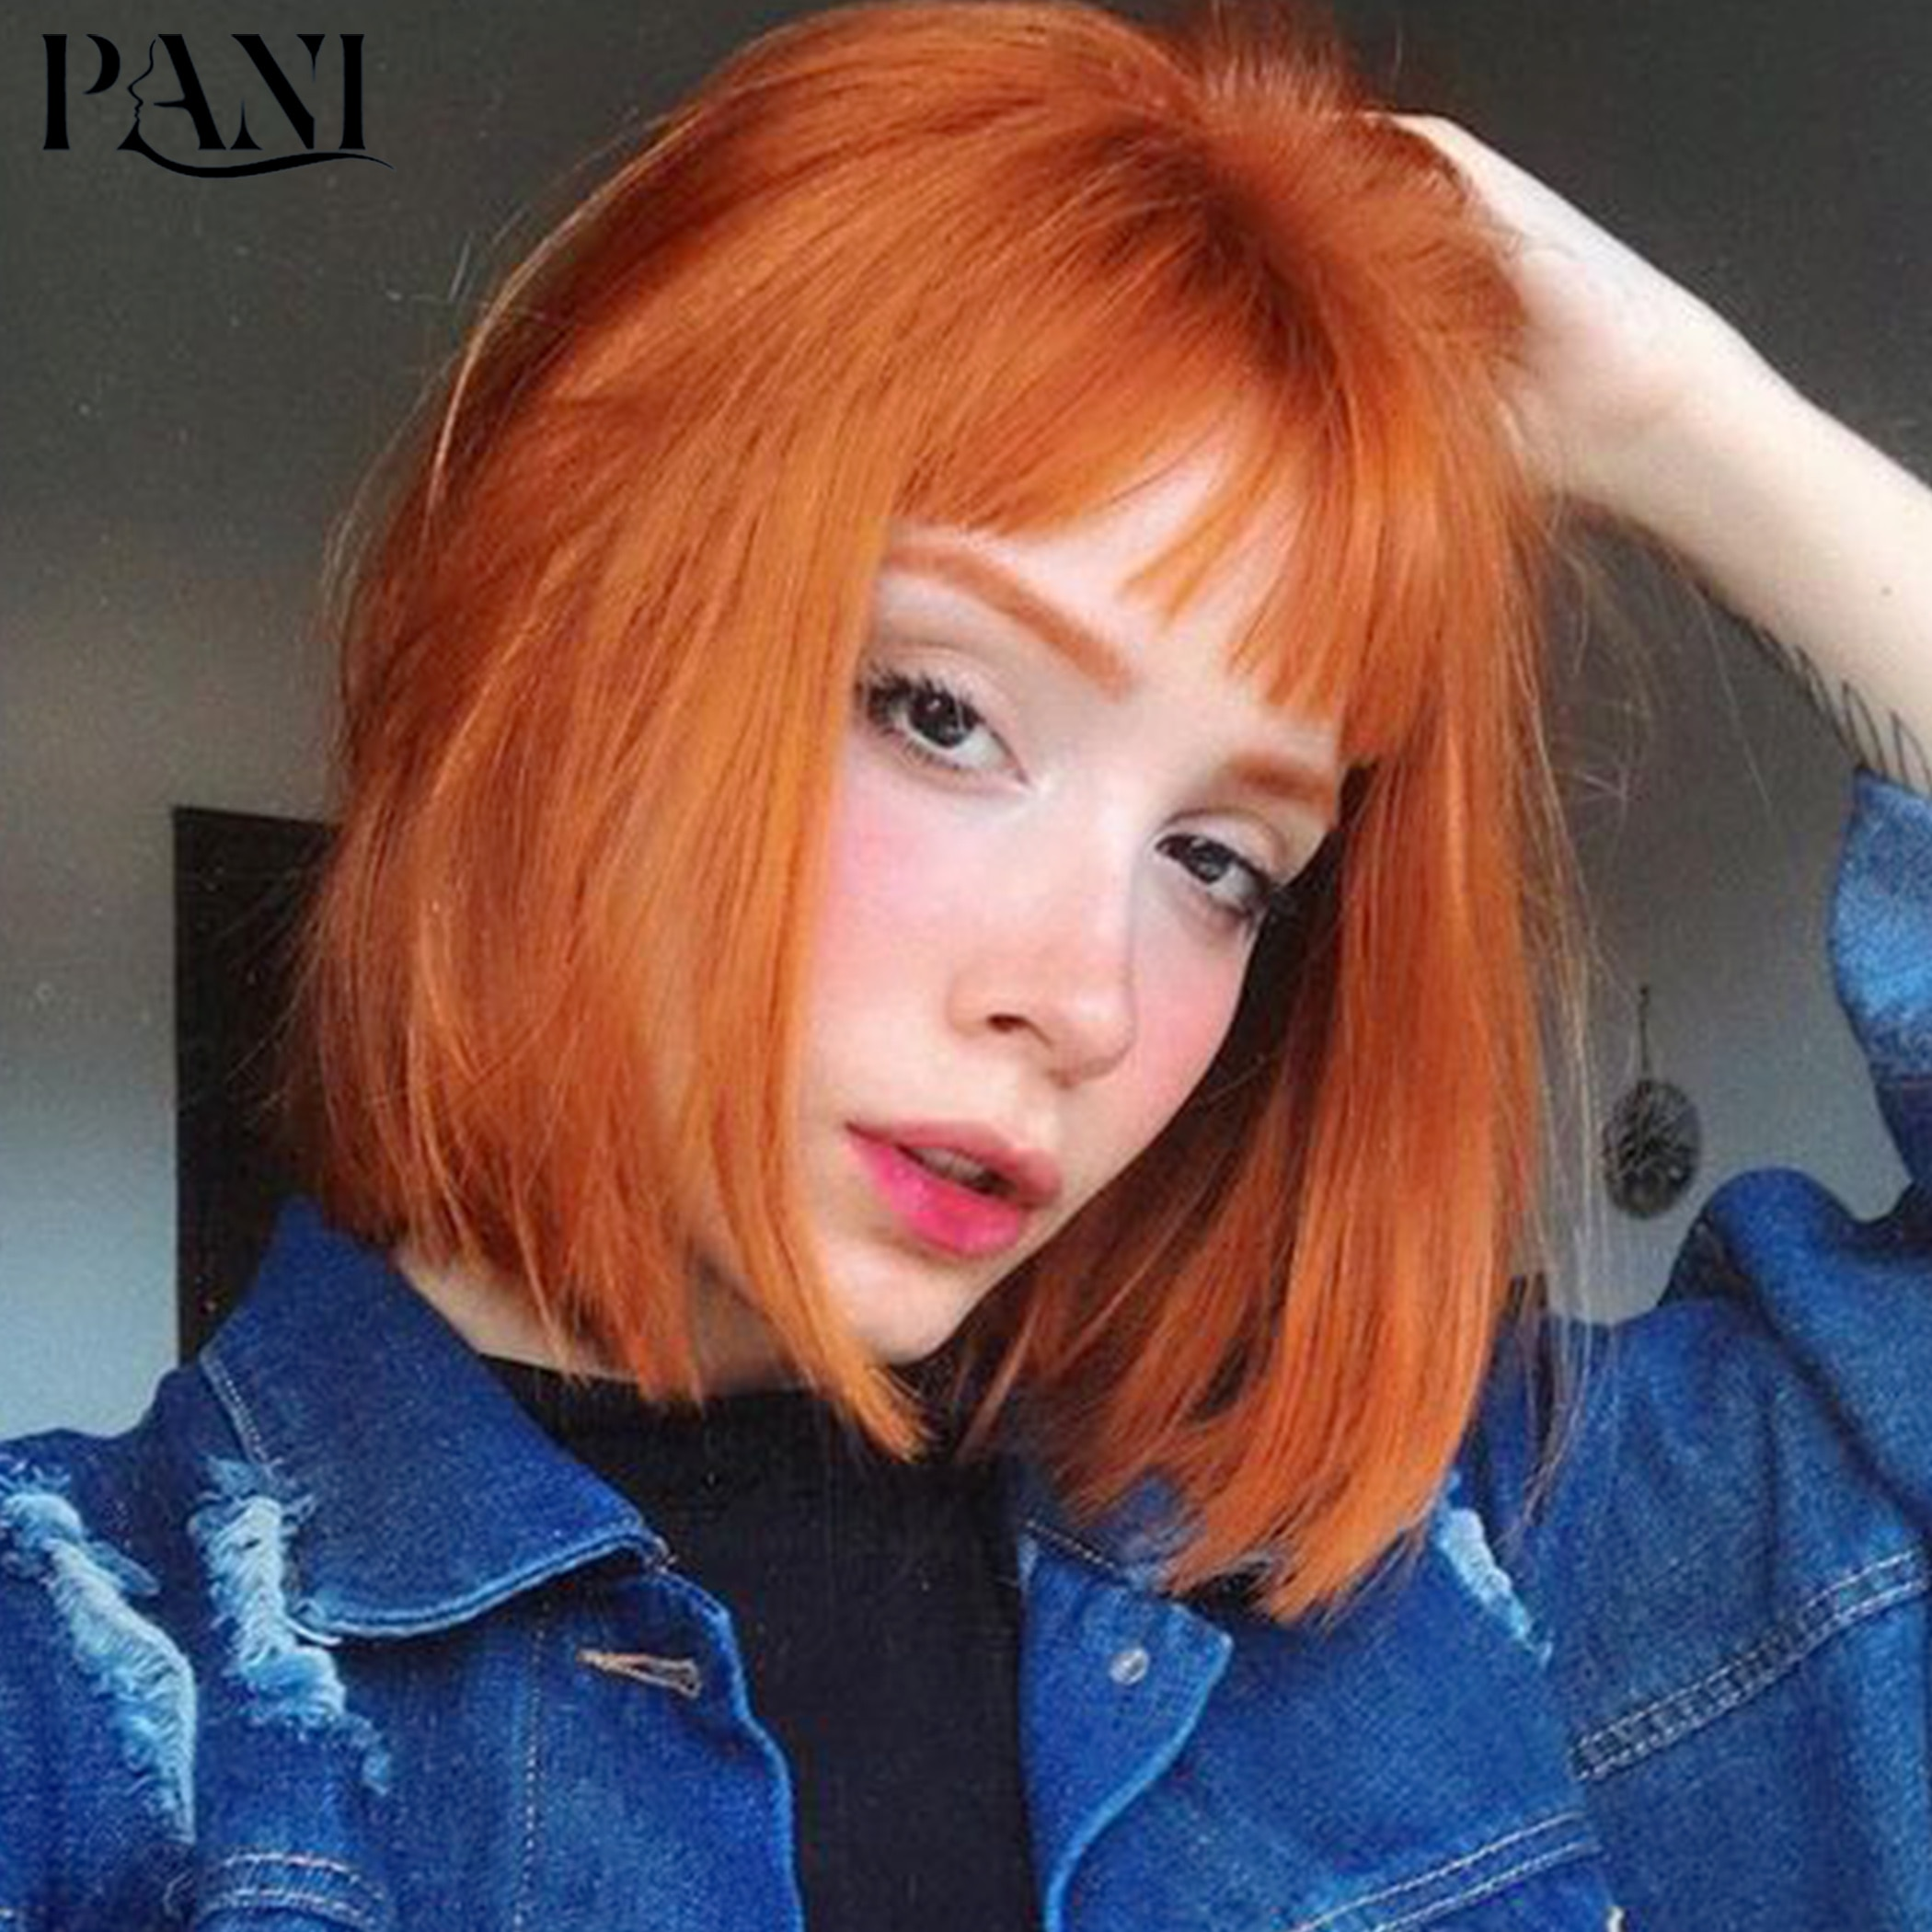 PANI Orange Wig Short Bob Wigs Synthetic Wigs With Bangs For Women Straight Wig Cosplay Wigs Lolita wig Cheap Wig Hair Extension fashion side bang short straight orange charming kousaka honoka cosplay wig with double chignons